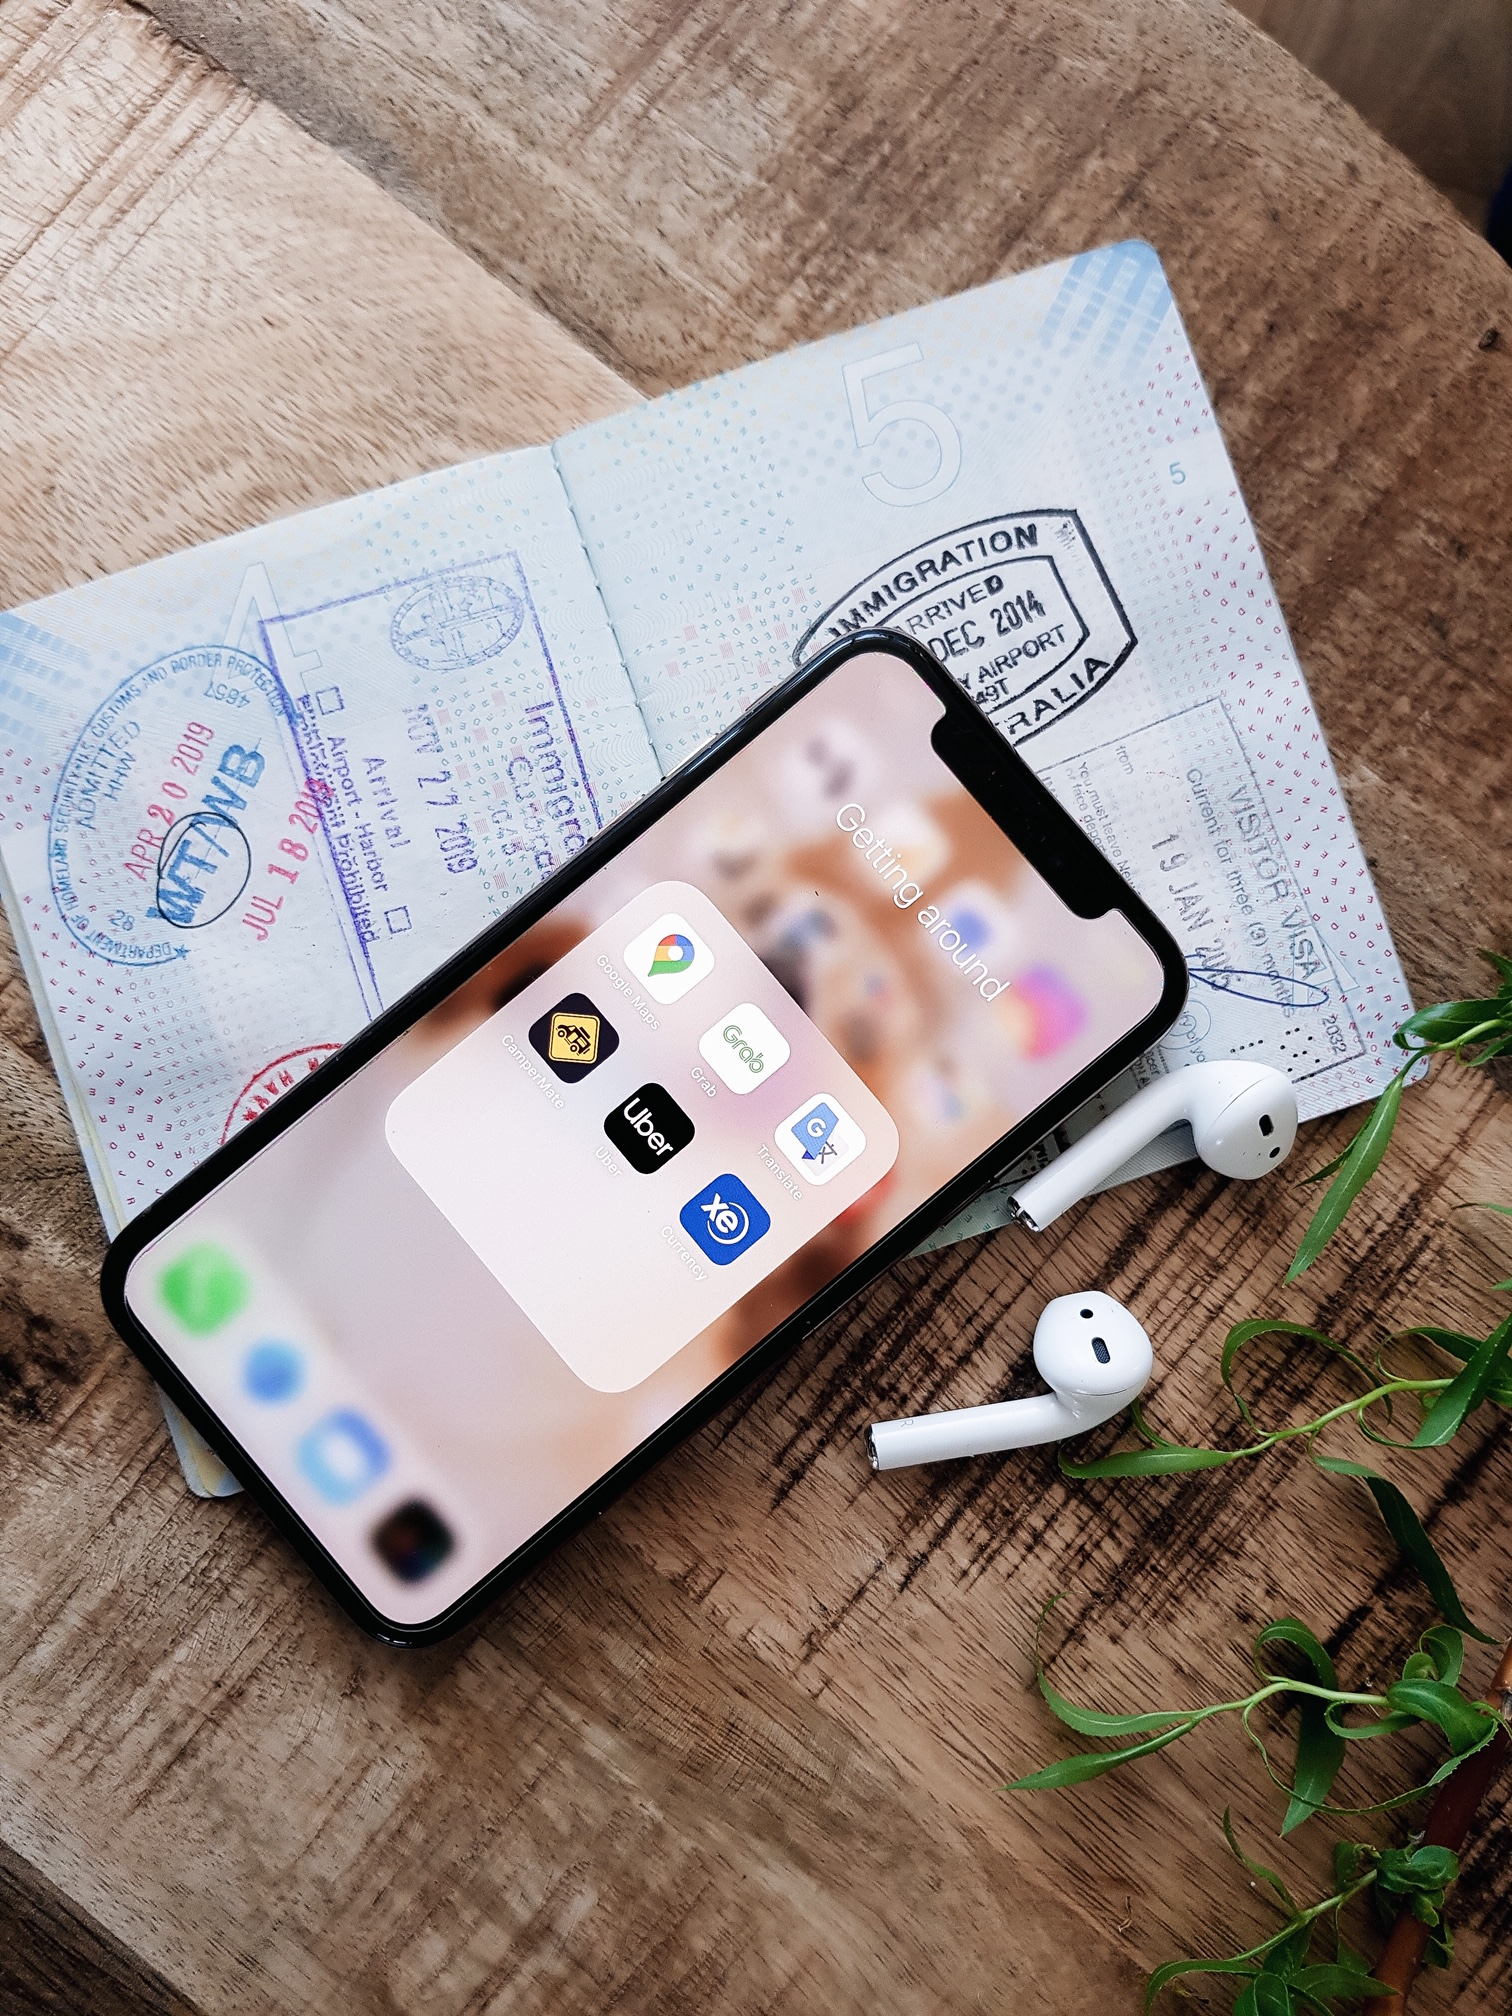 Getting around travel apps I can't live without